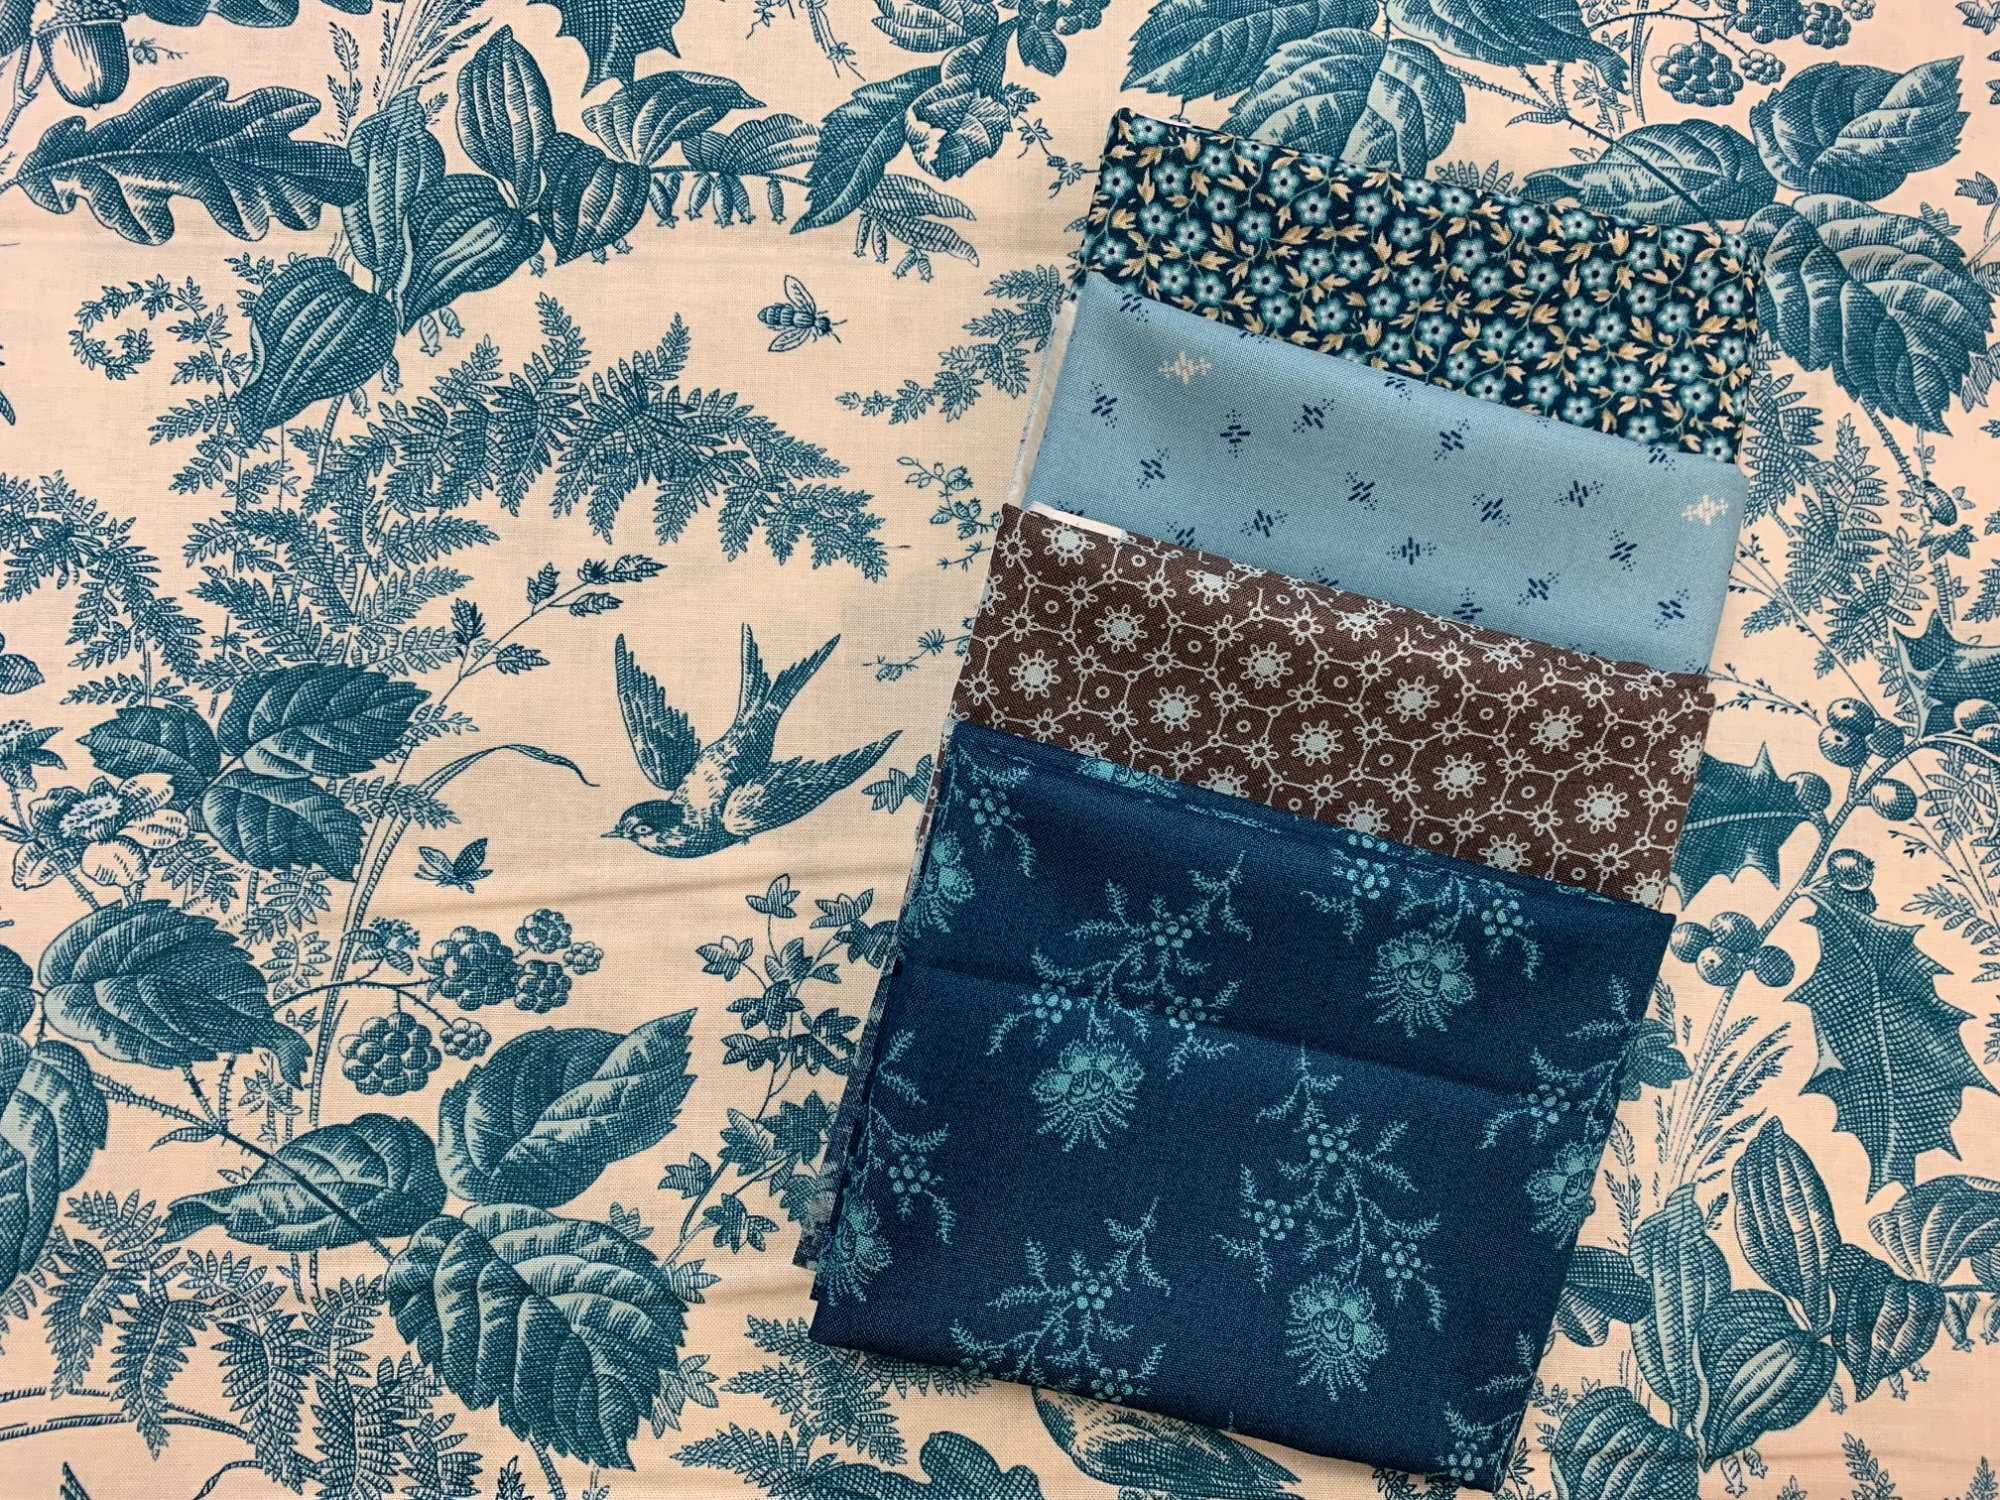 Royal Blue Bundle by Edyta Sitar for Laundry Basket Quilts - Includes 1/2 yard focus fabric and 4 FQ coordinates